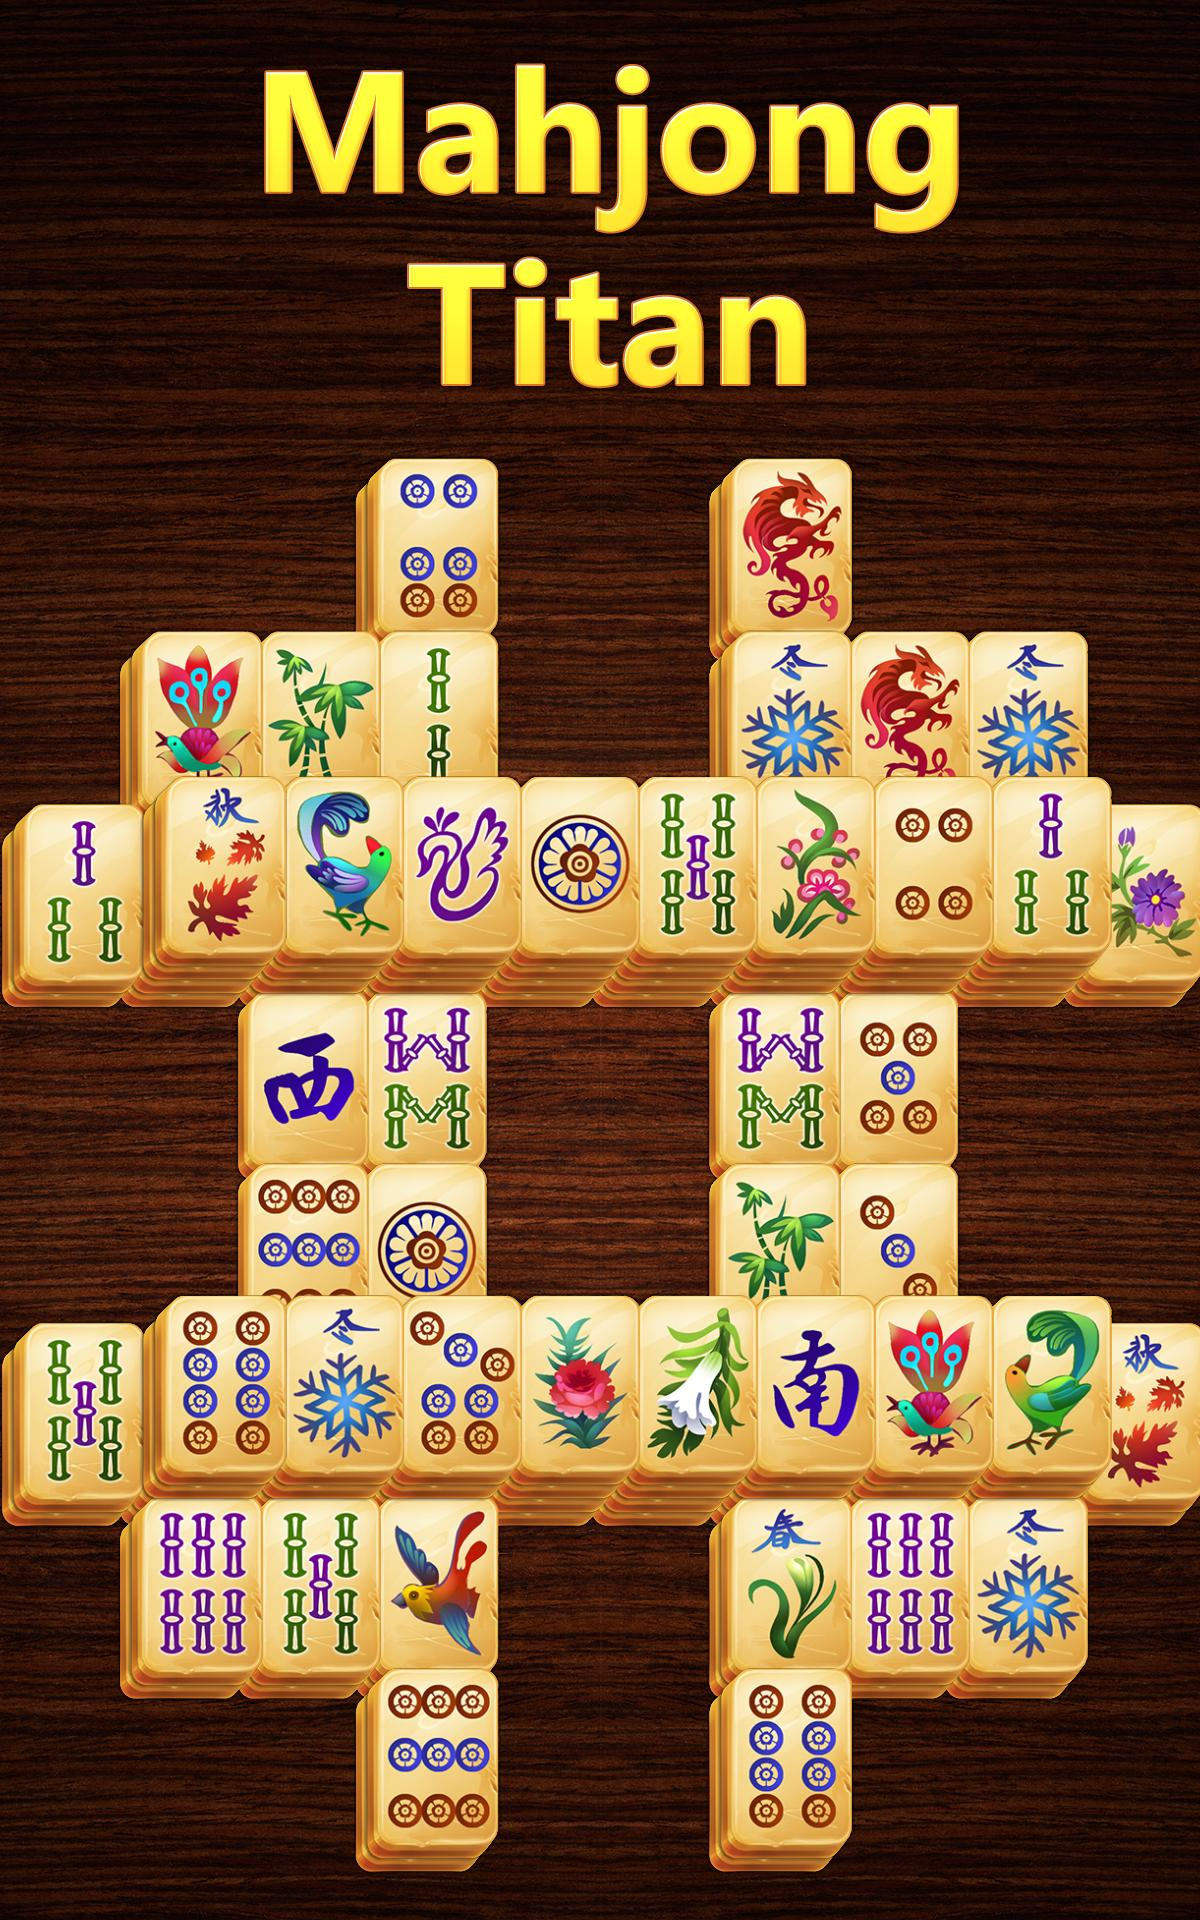 Mahjong Titan for Android - APK Download